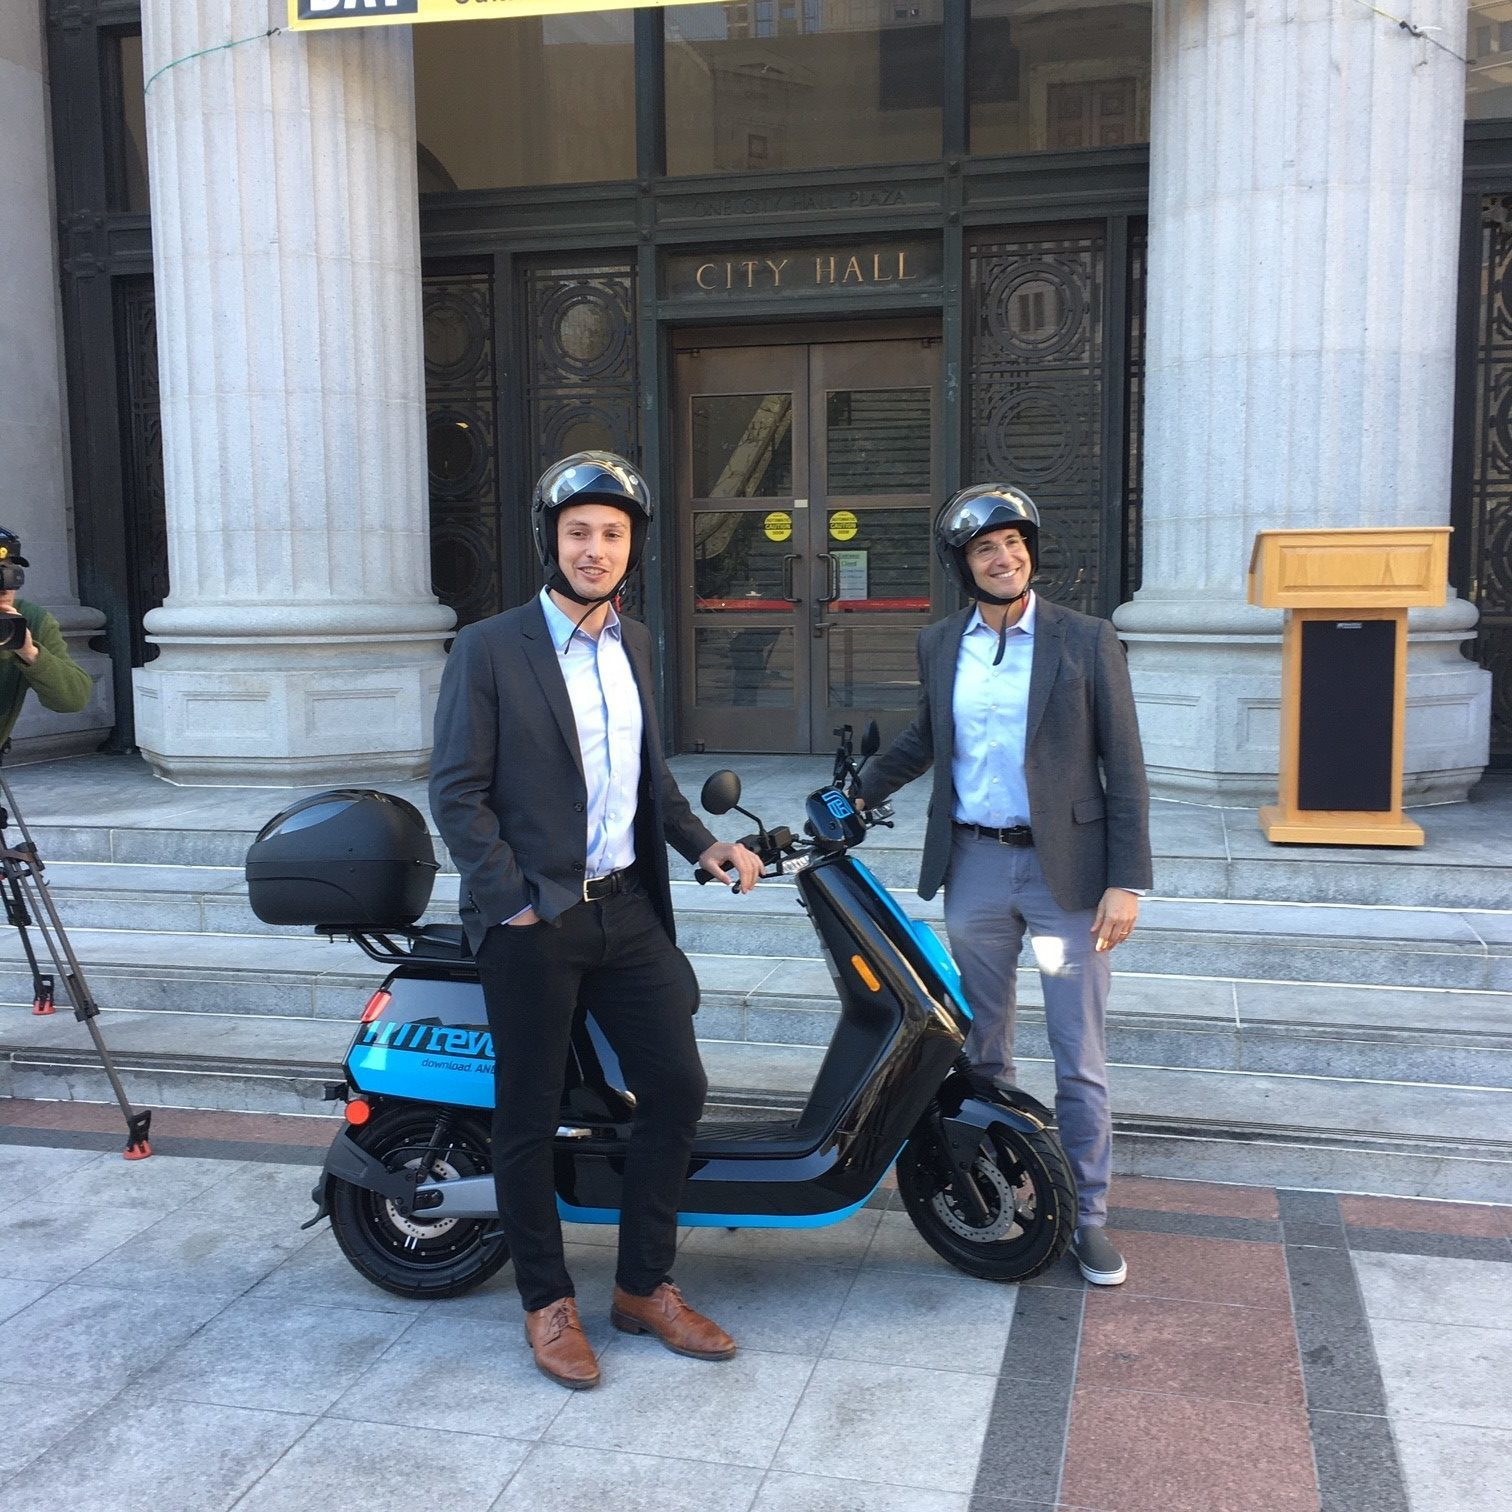 OakDOT and Revel rollout Oakland's first shared e-moped service